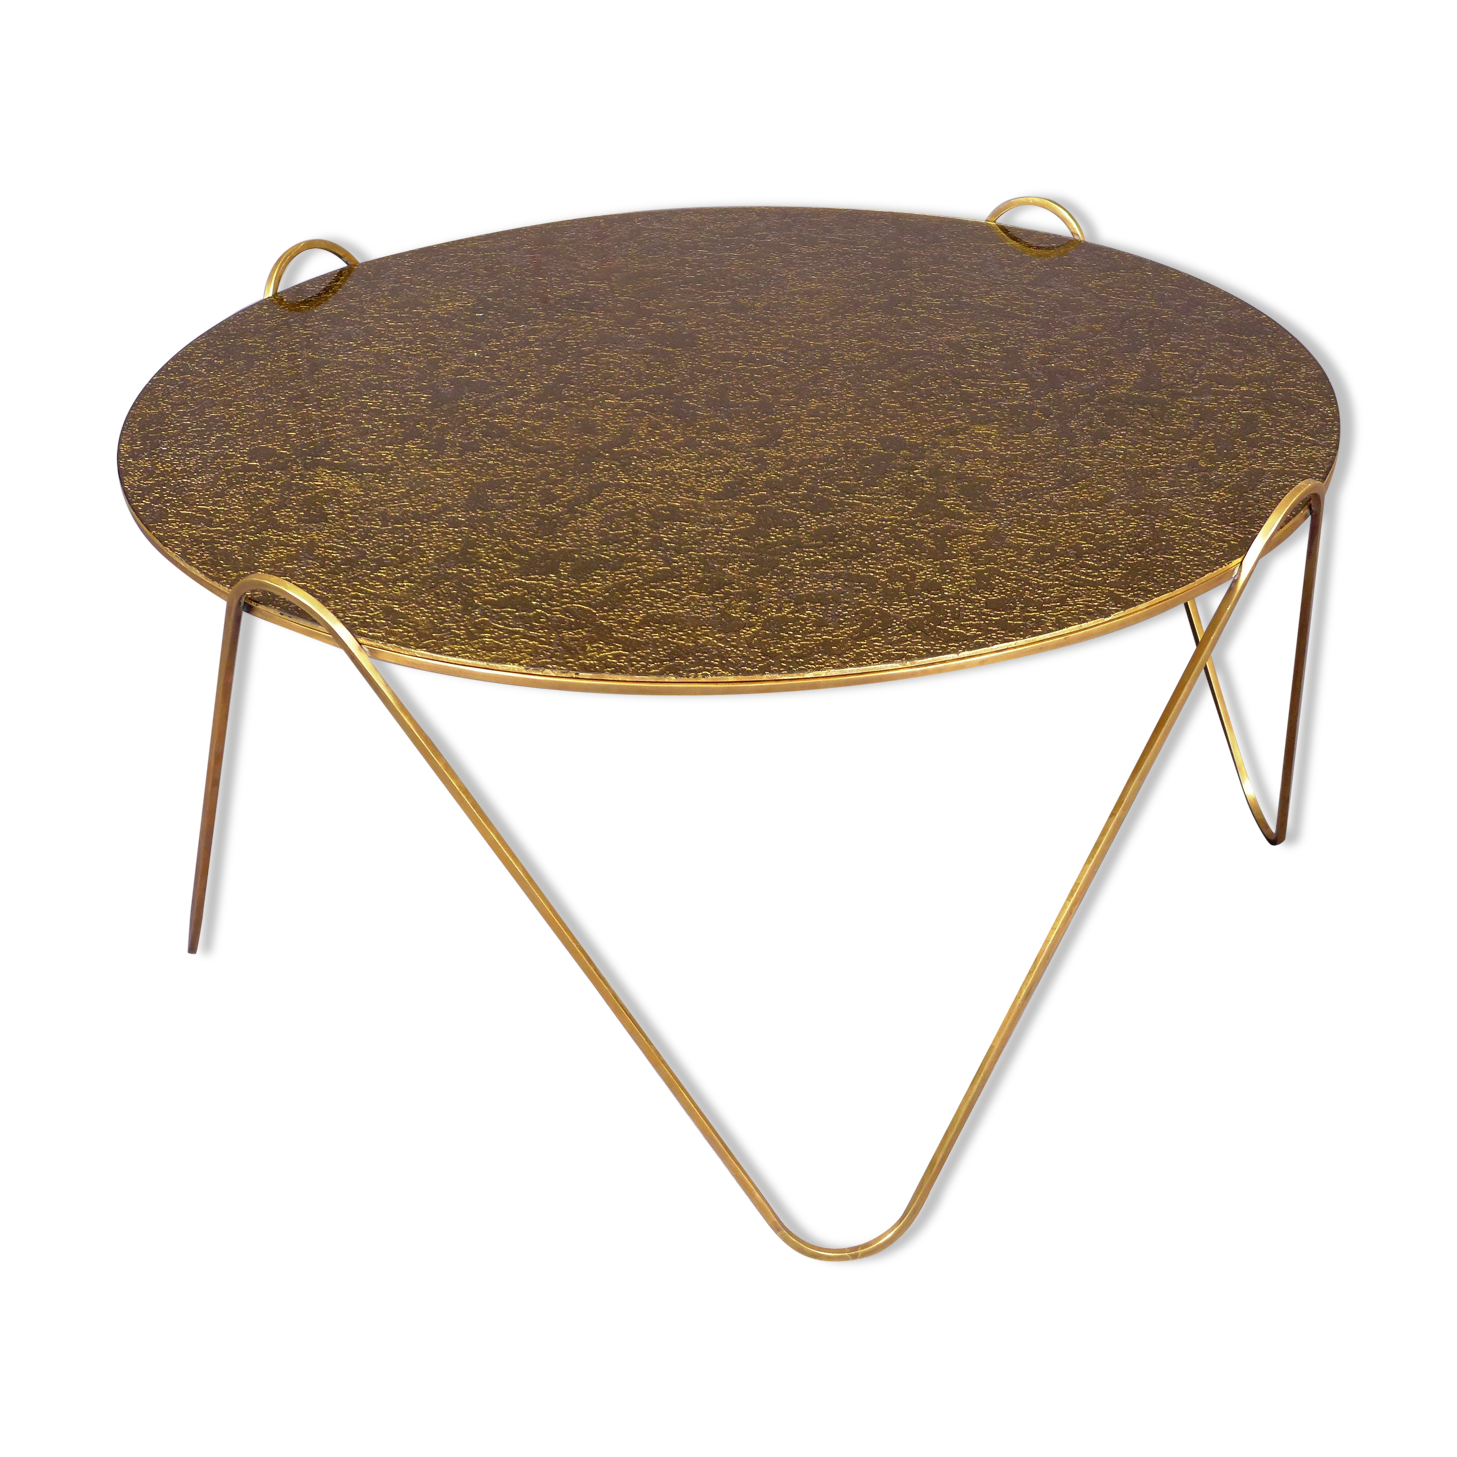 Table Basse Dore Table Basse Dor Duoccasion Troccom Table  # Table Basse Ronde Hippie